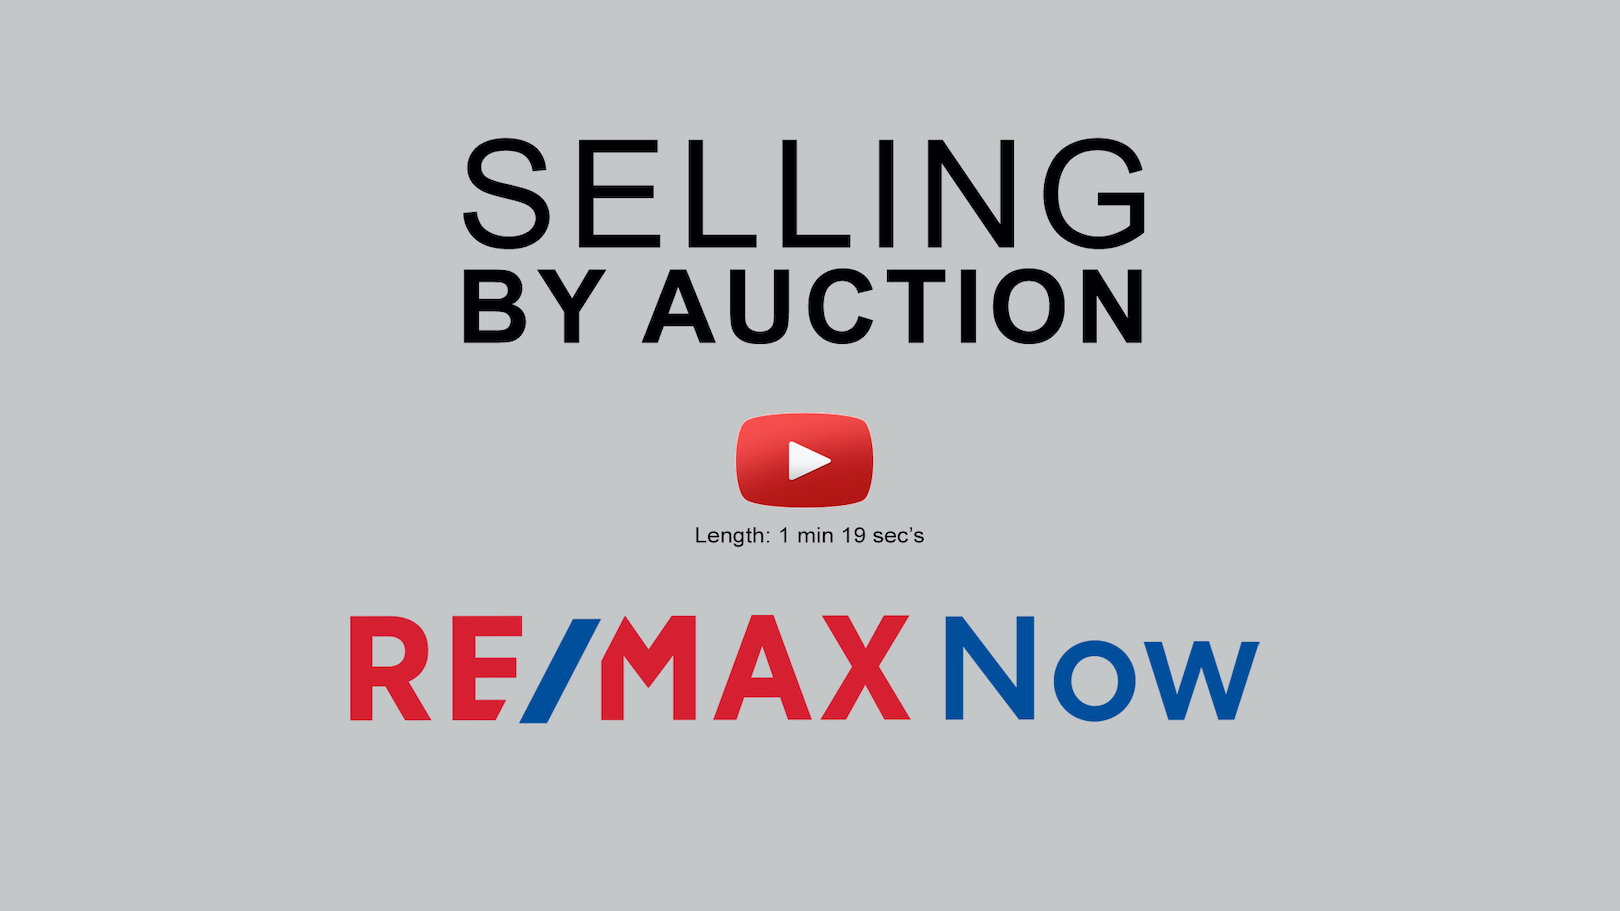 Selling by Auction